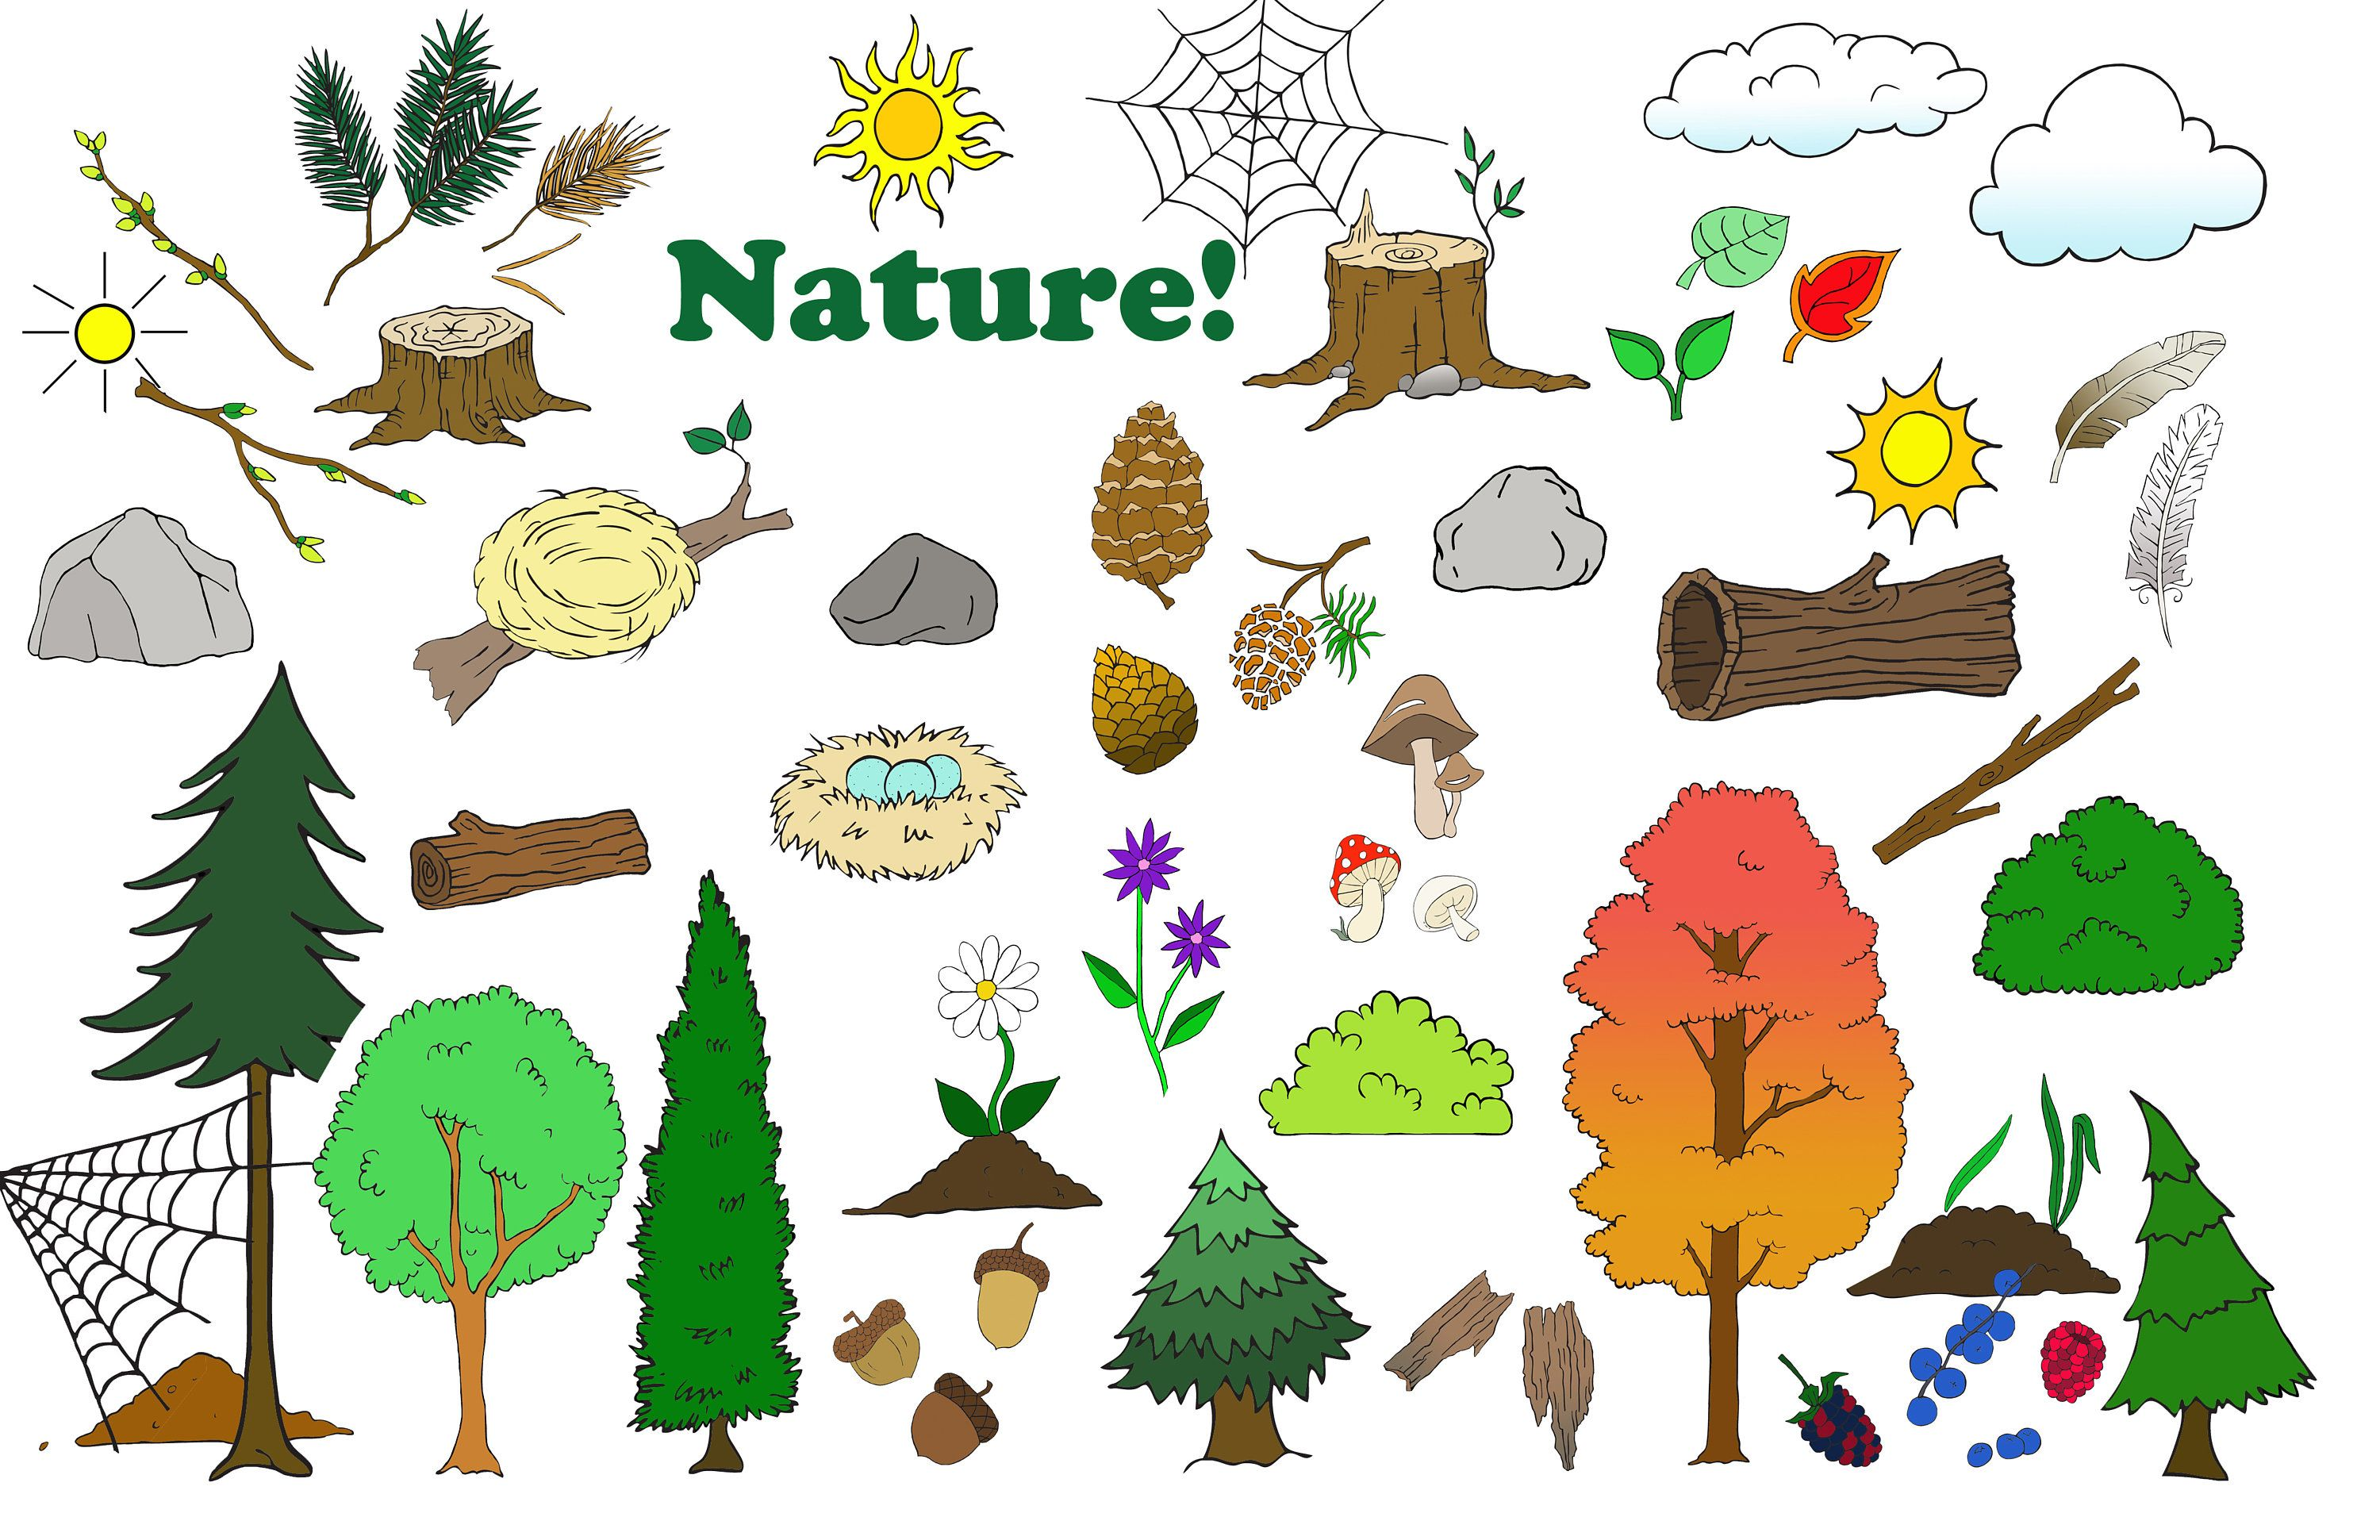 Camping animal rustic tree. Hunting clipart nature